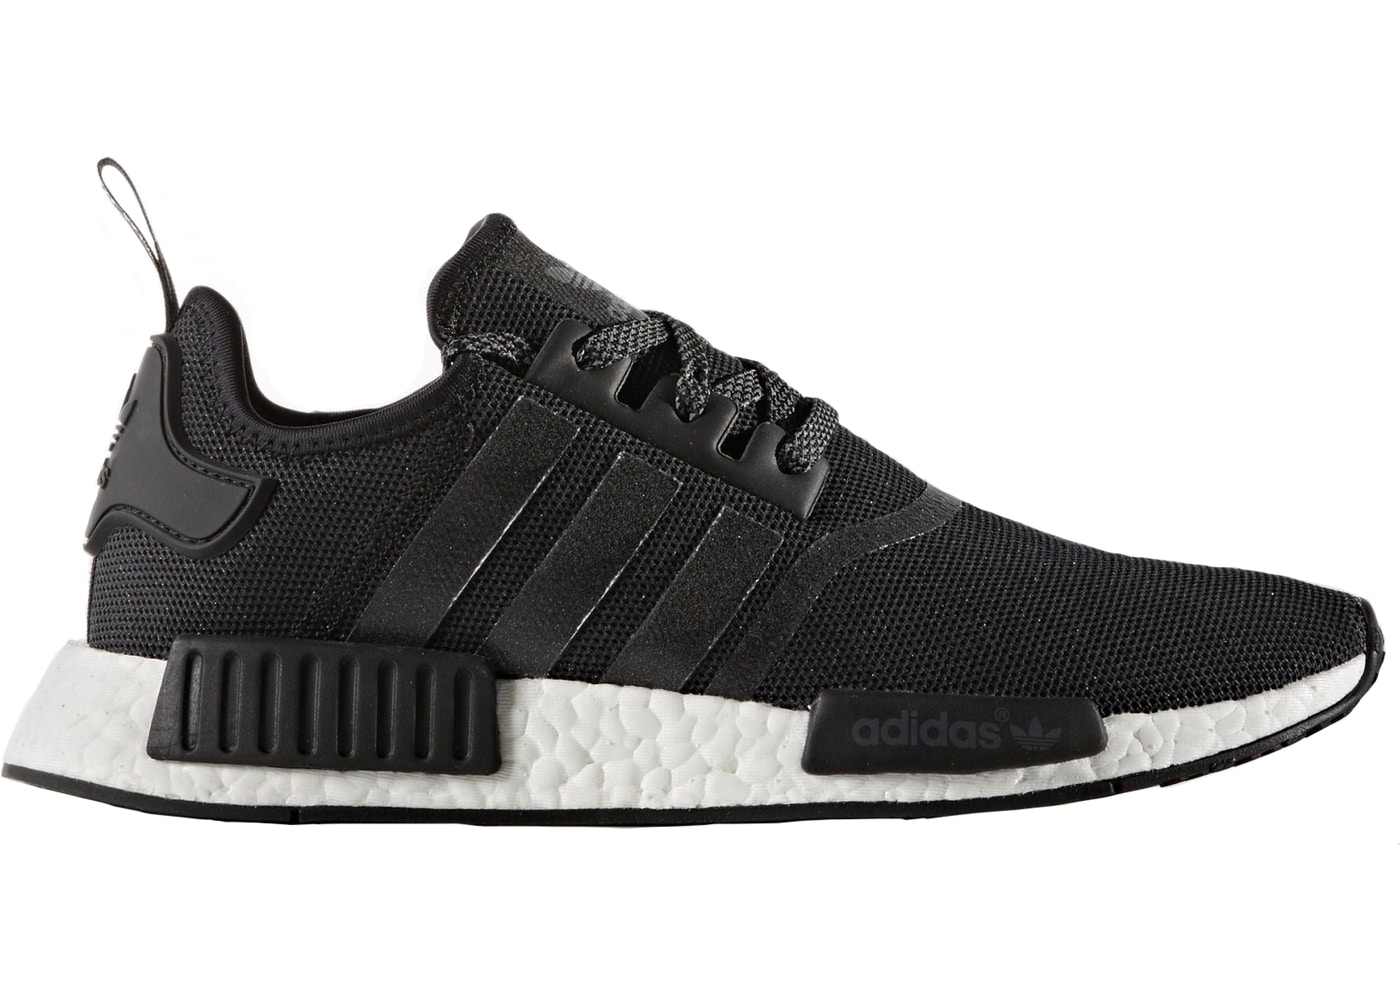 Reflective R1 Black S31505 Nmd Adidas dhQrxCts